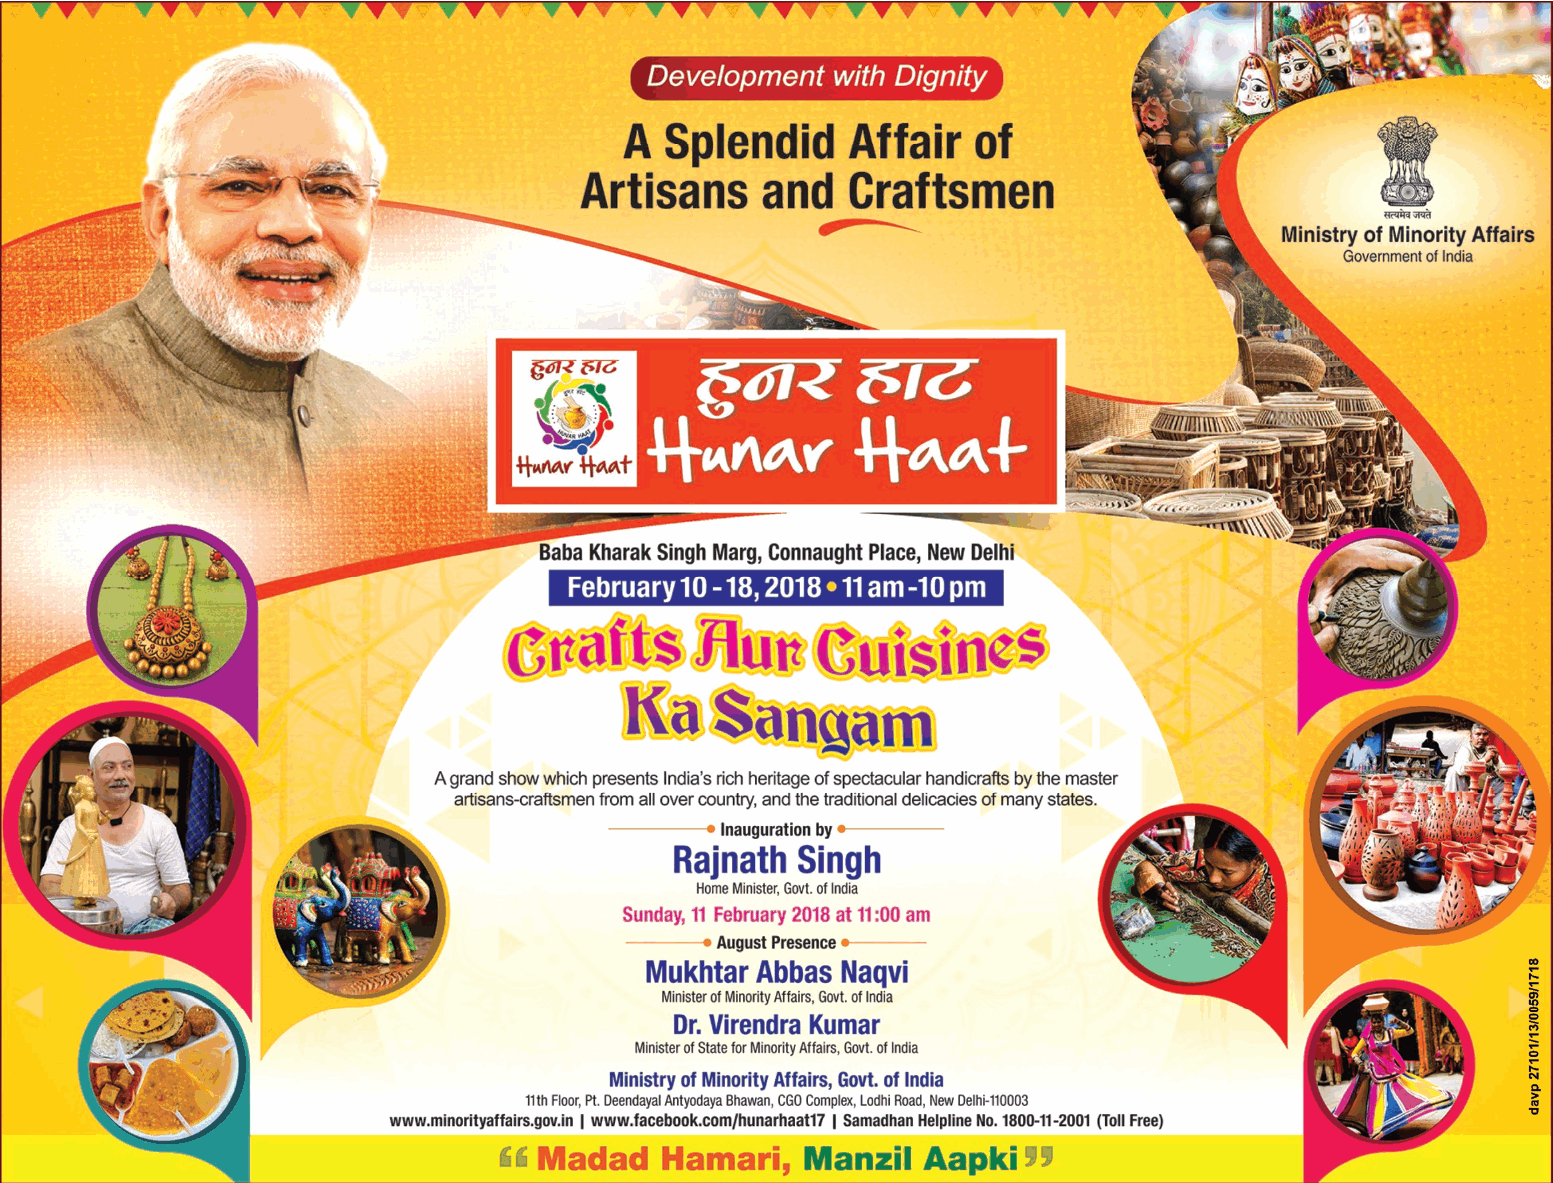 Hunar Haat A Splendid Affair Of Artisans And Craftsmen Crafts Aur Cuisines Ka Sangam Ad